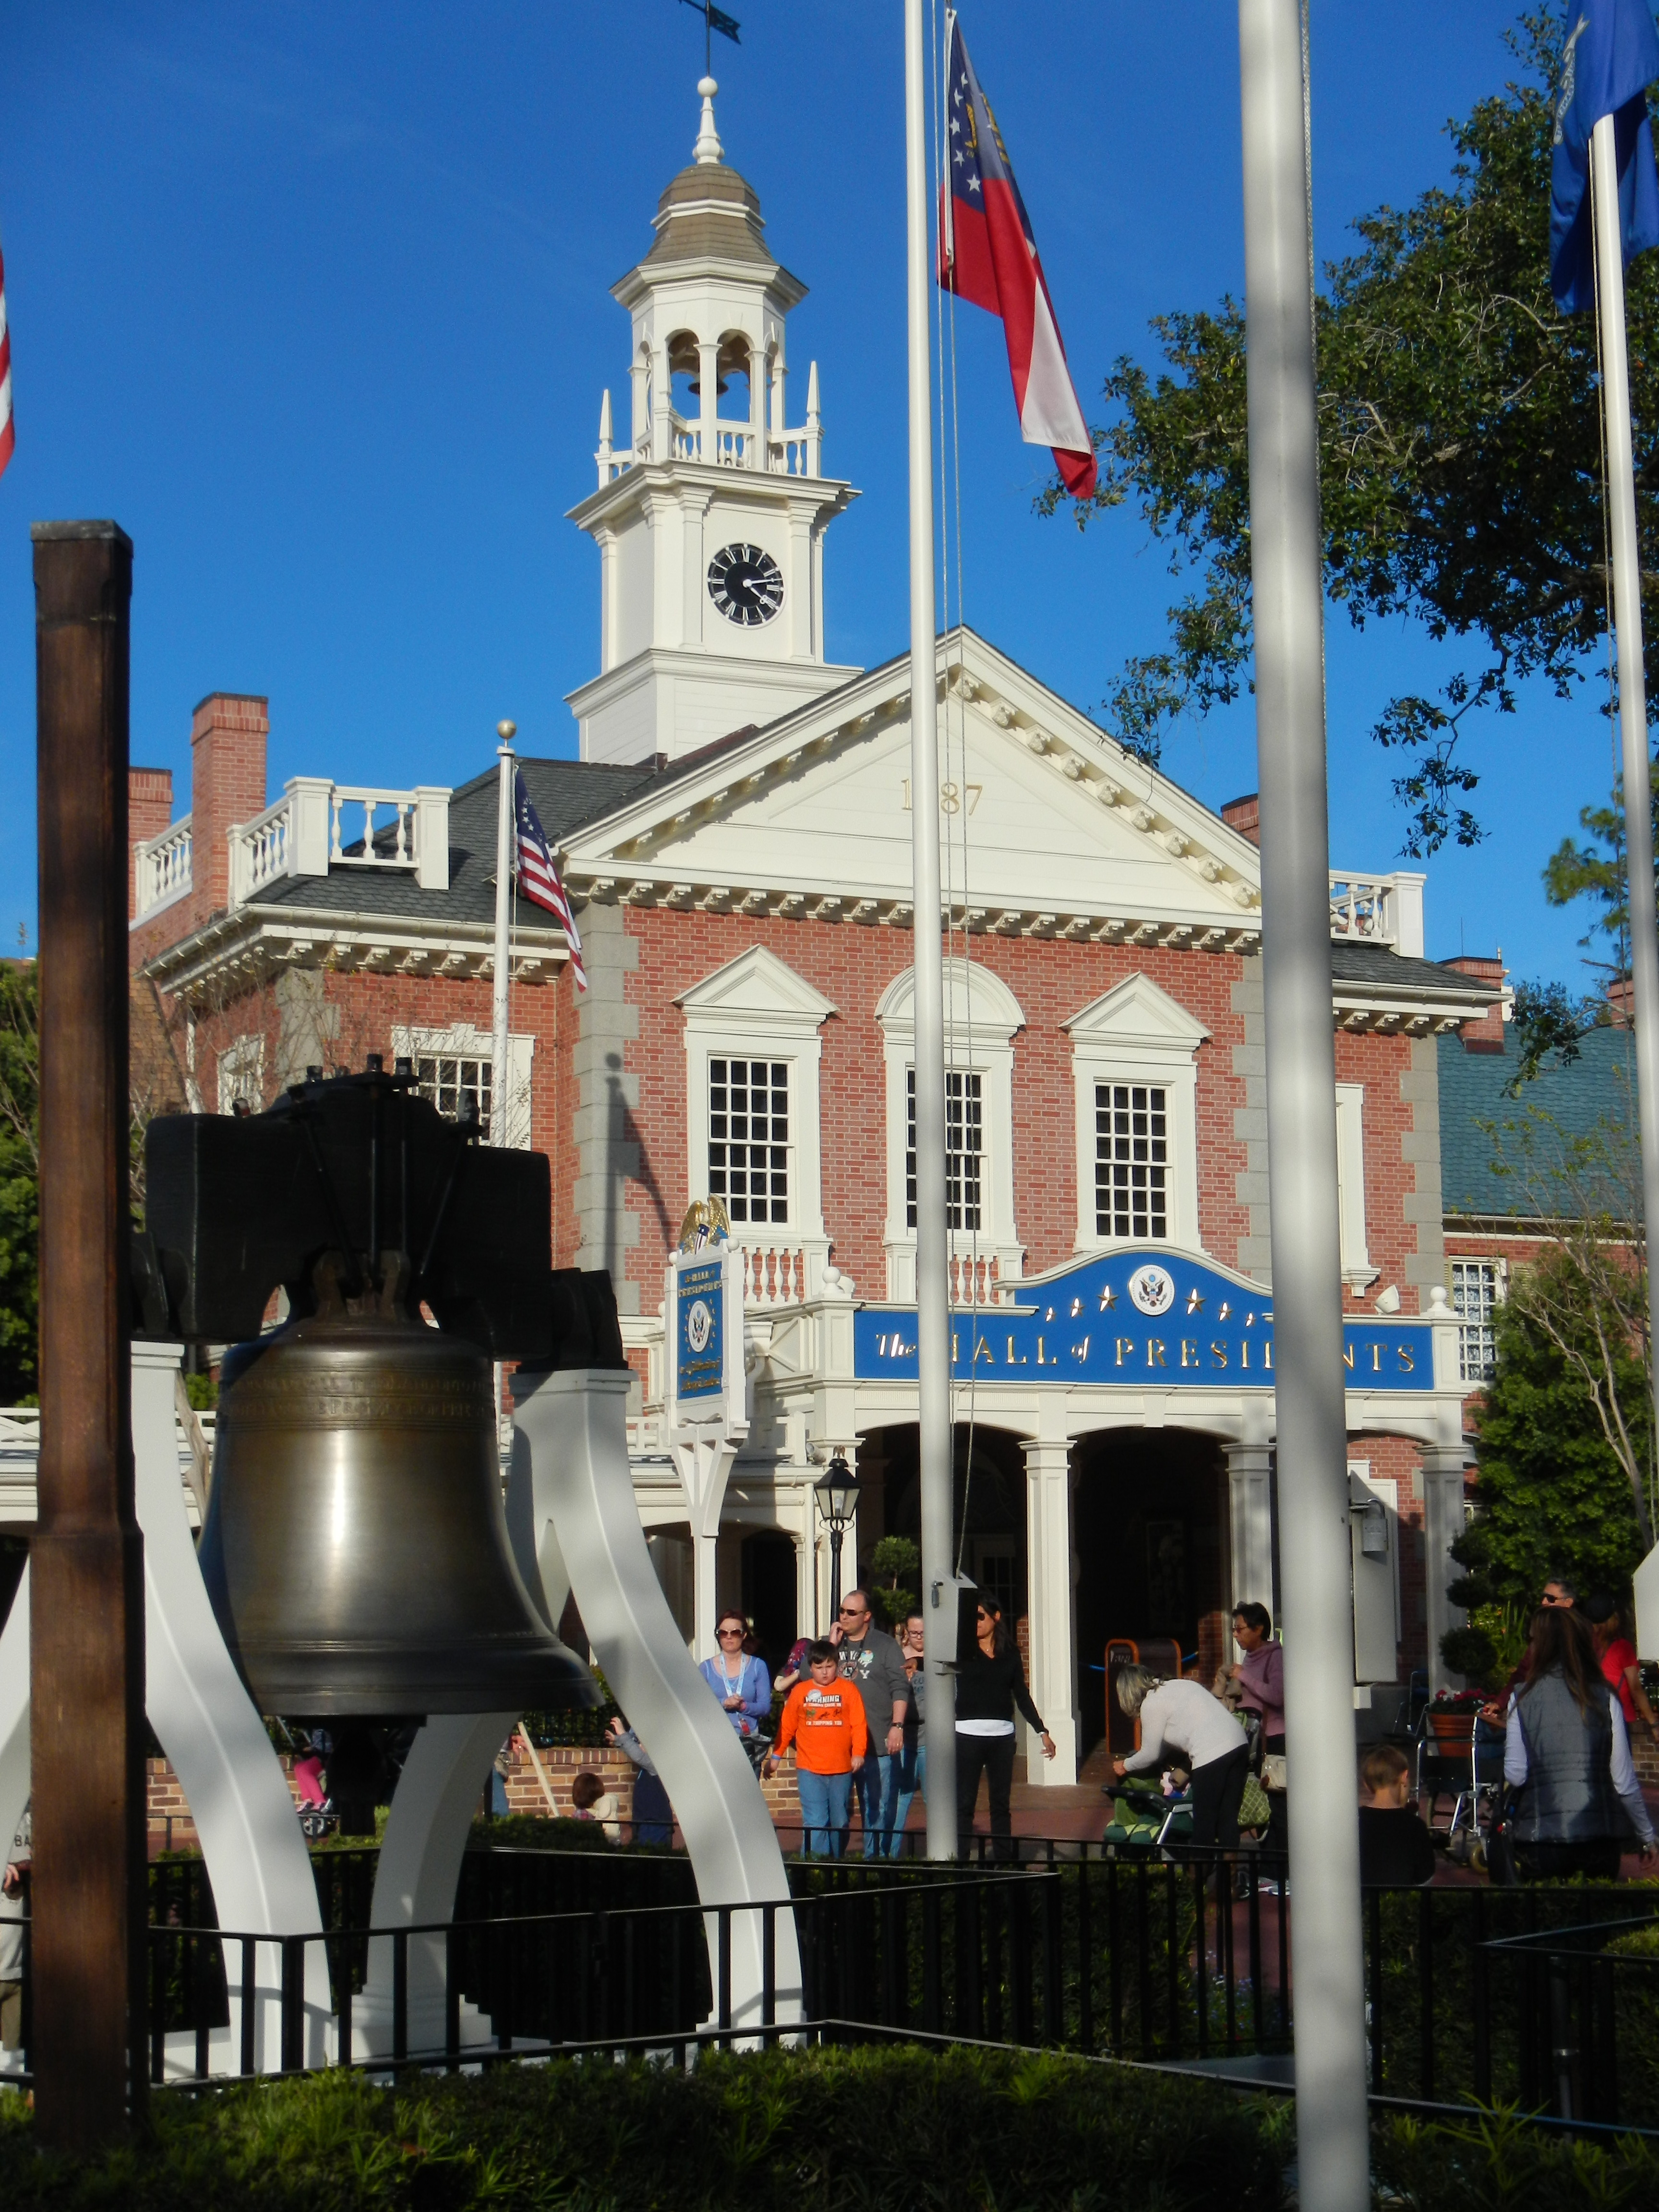 In Liberty Square.  Liberty Bell in foreground and Hall of Presidents in background.